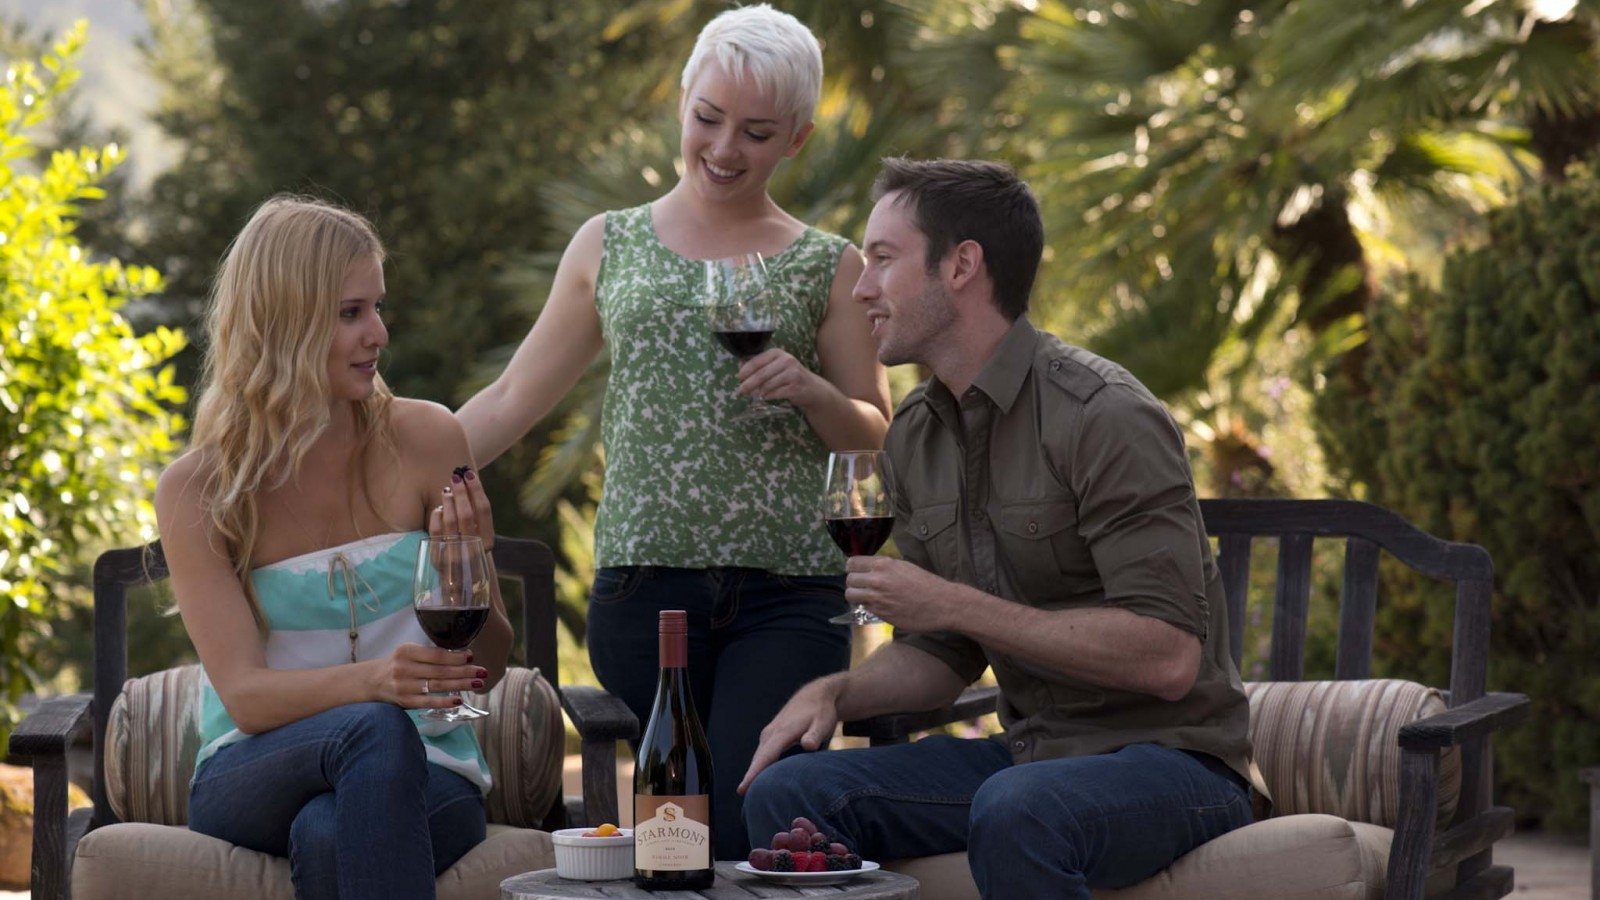 Drinking wine with friends